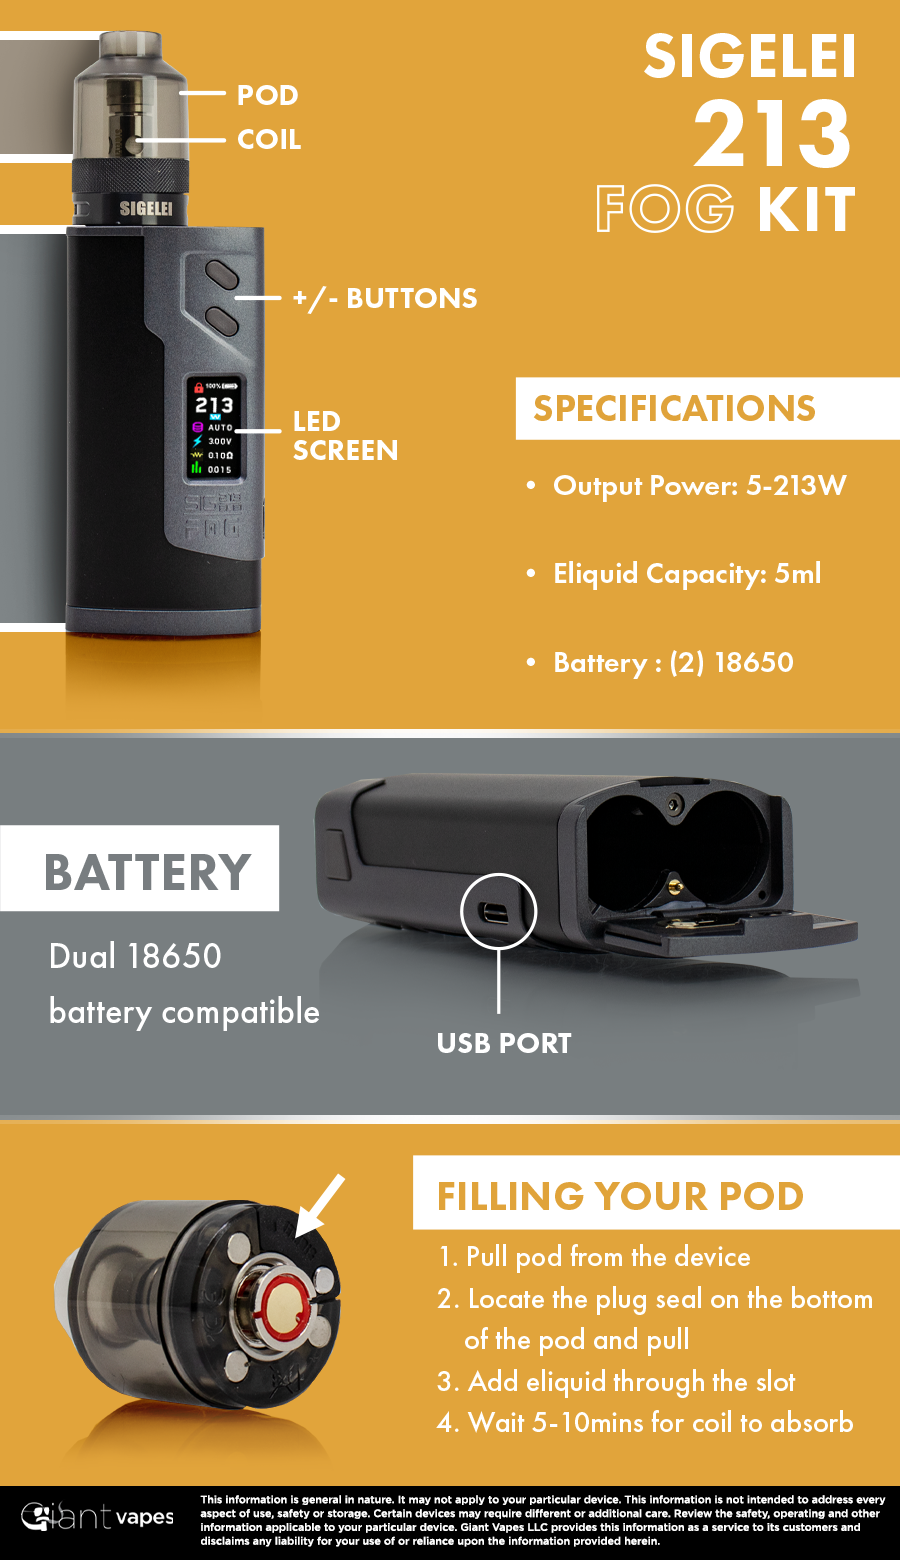 Sigelei 213 FOG Kit Infographic